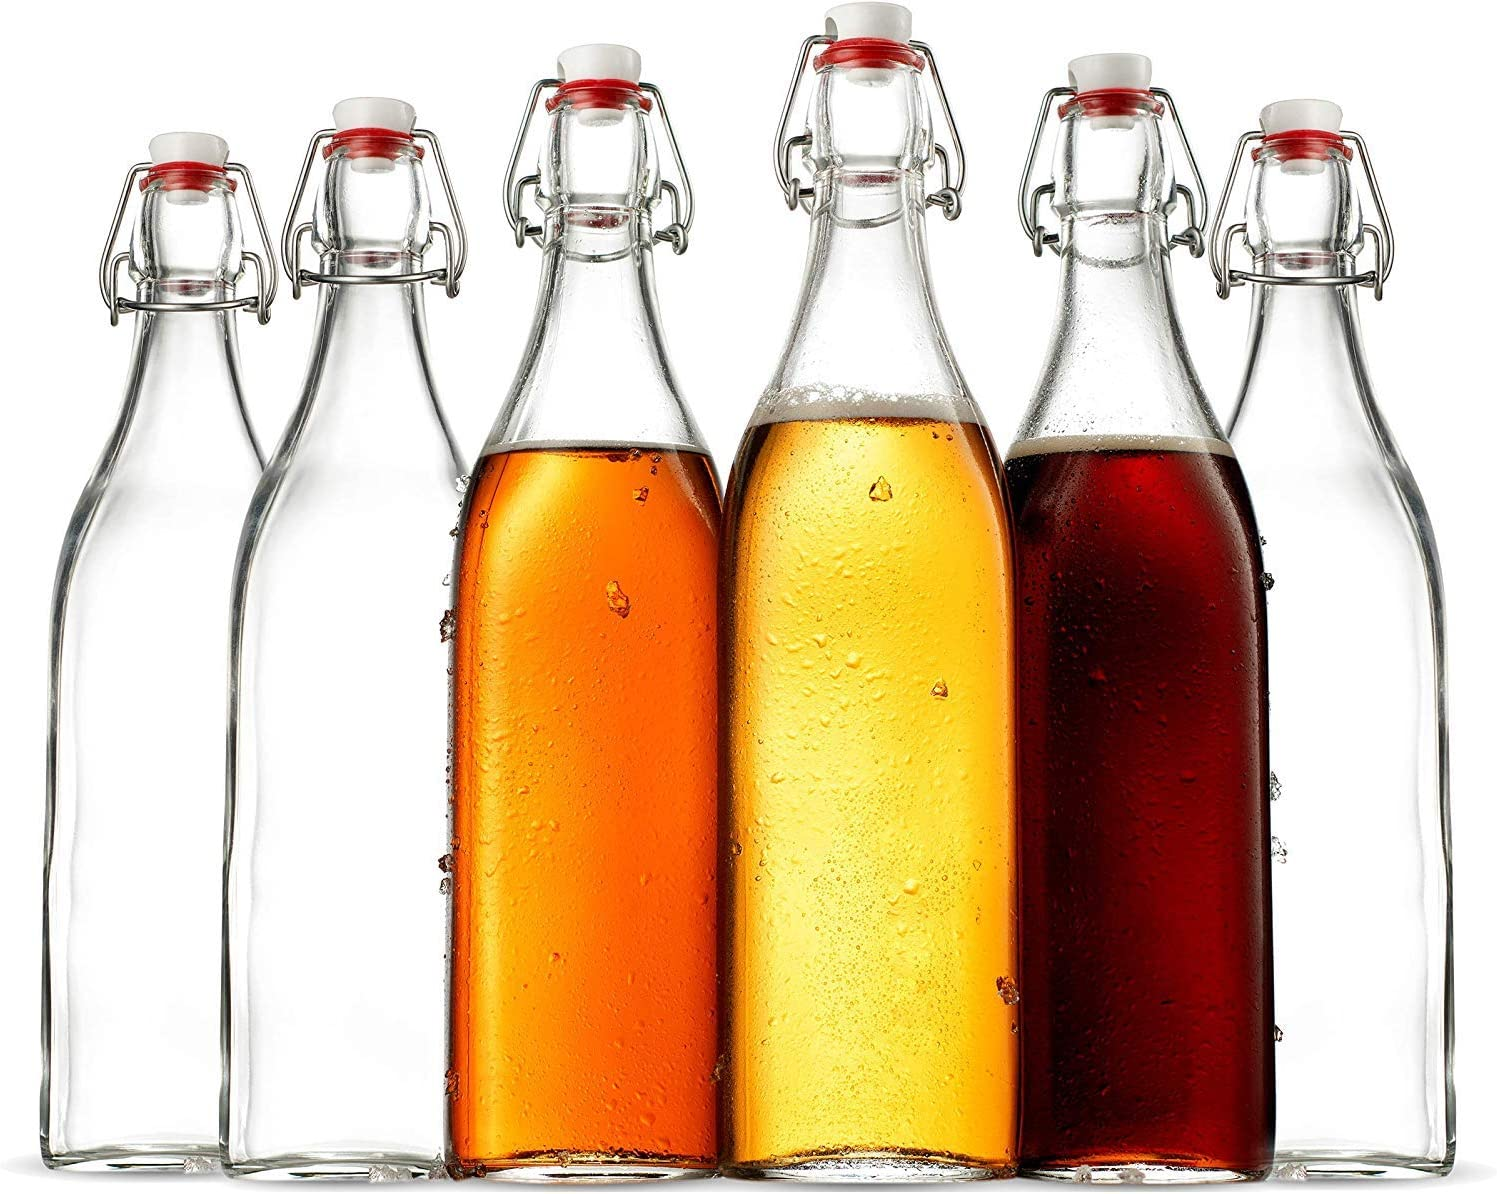 Swing Top Clear Glass SQUARE Bottle With Airtight Stopper - 33.75 oz (6 Pack) Fliptop Grolsch Bottles Great for Oil and Vinegar, Beverages, Homemade Juices, Smoothies,